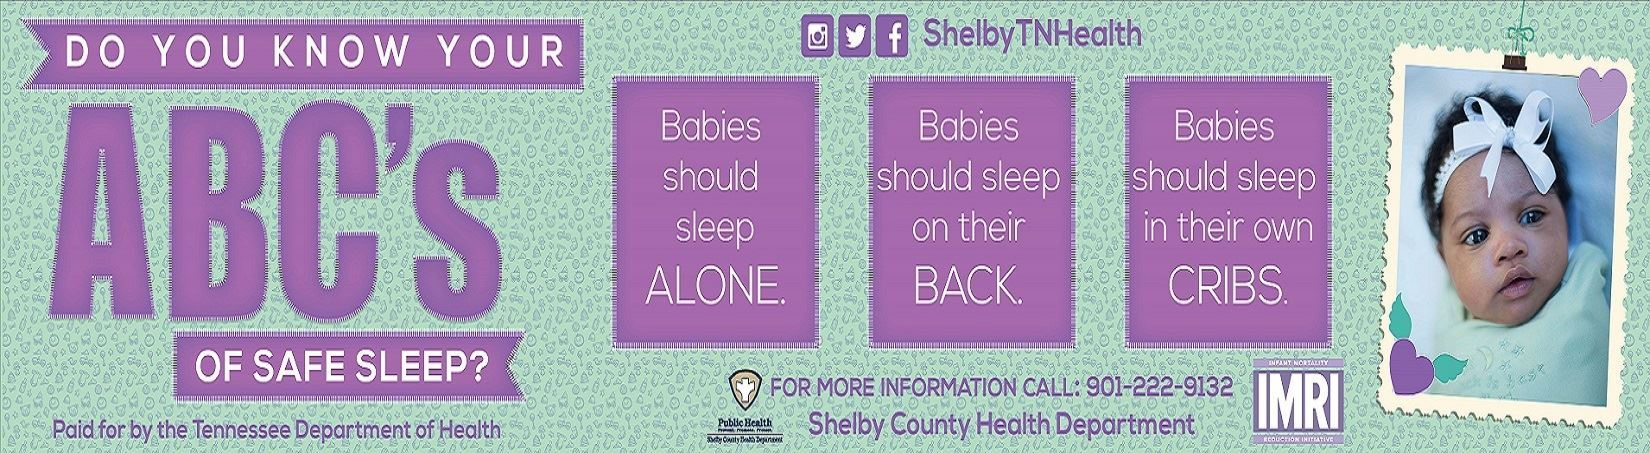 shelby county health dept., tn | official website